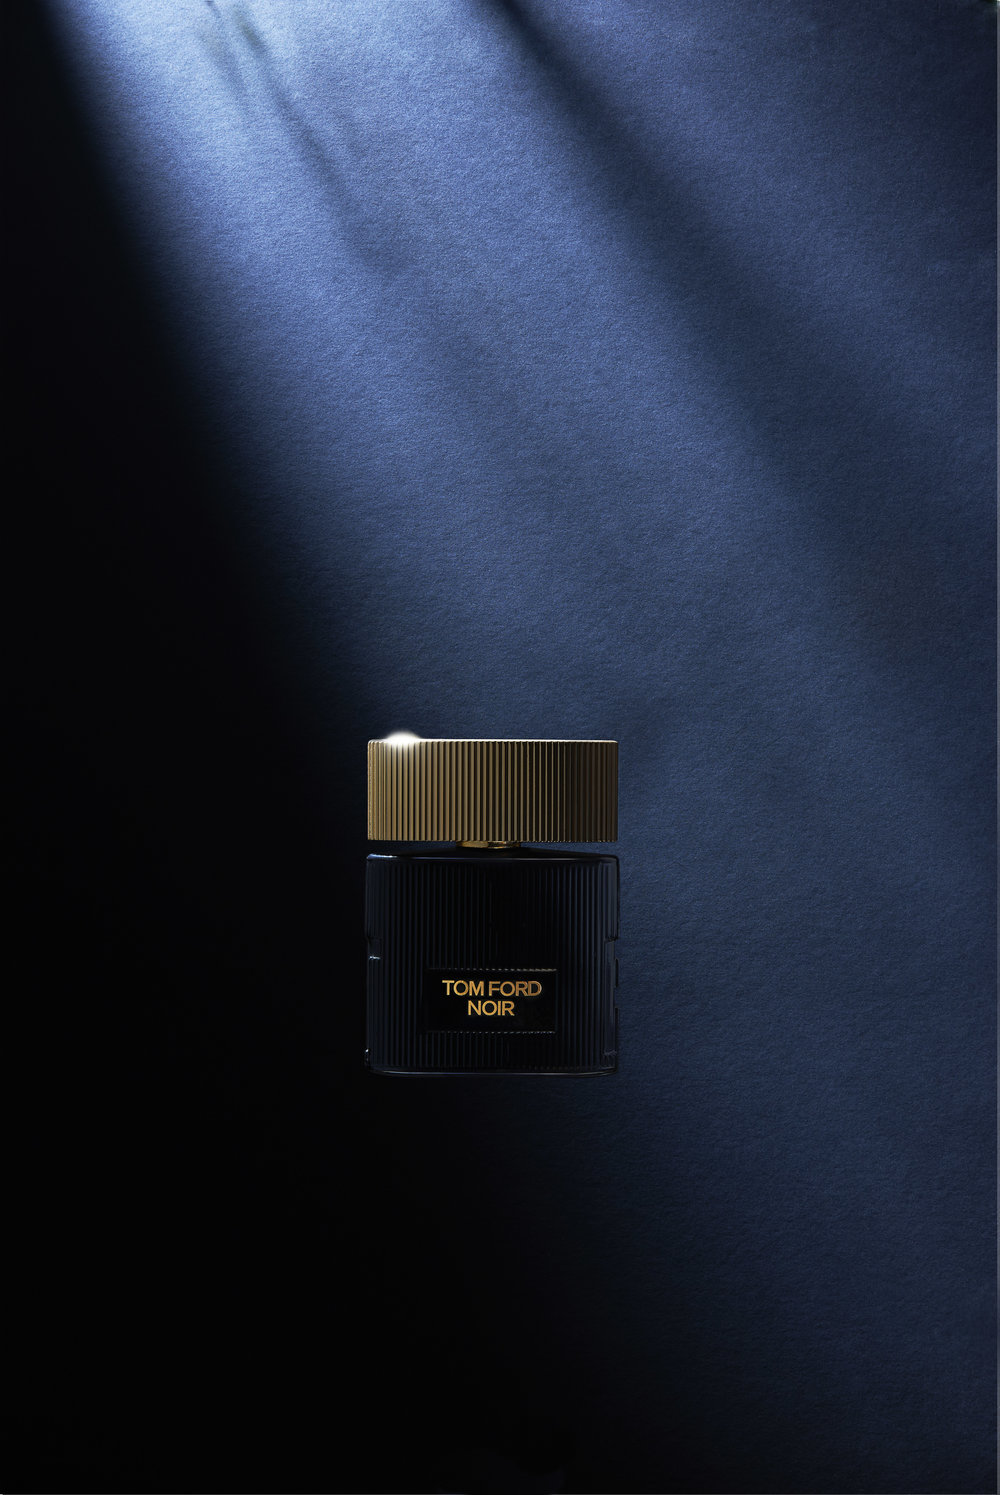 Still life product photography of a perfume bottle for Tom Ford Noir. Photographed in the moonlight